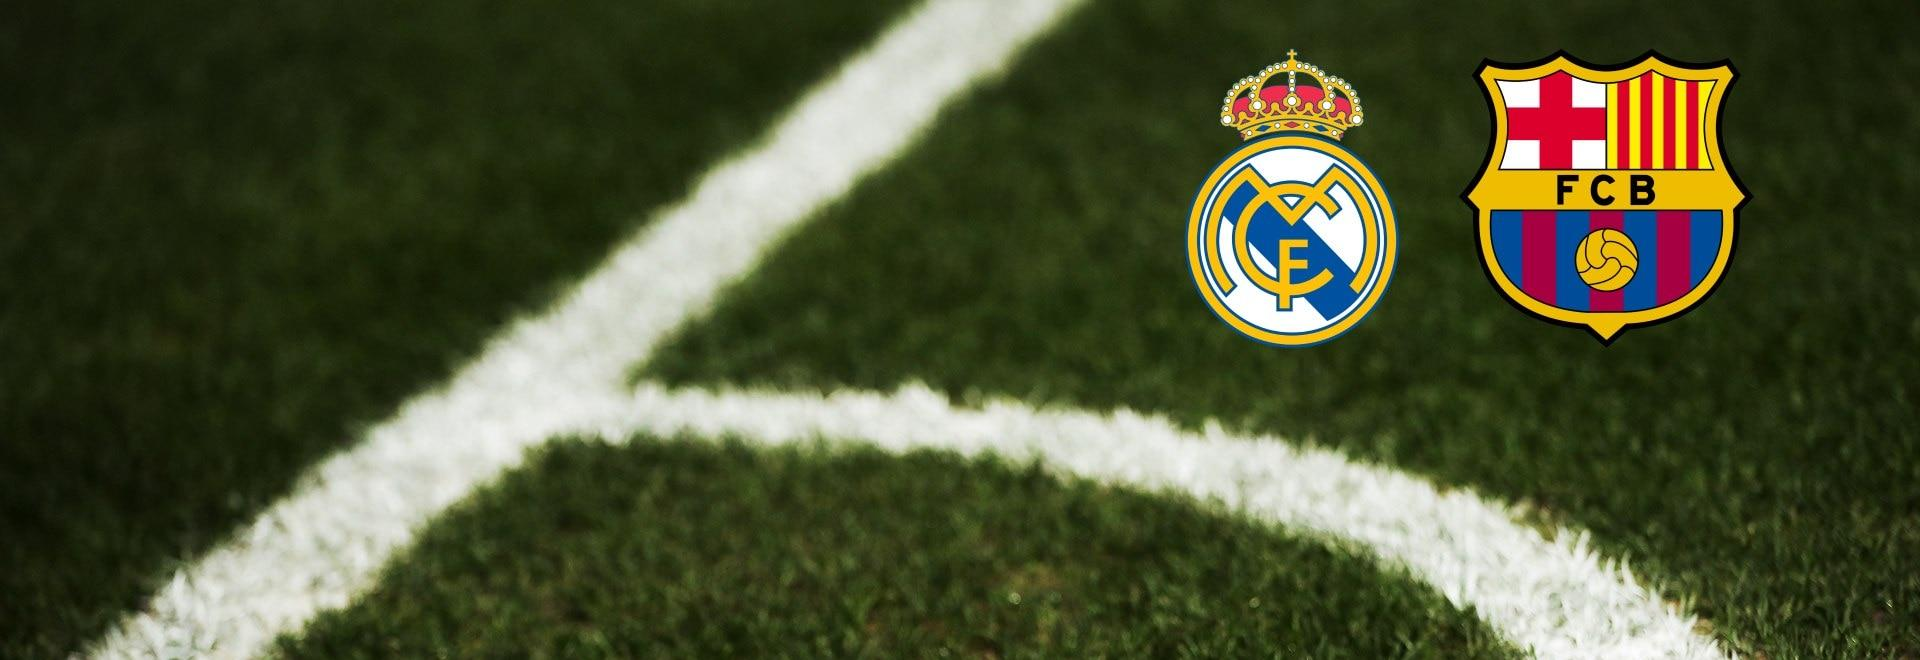 Real Madrid - Barcellona. 26a g.